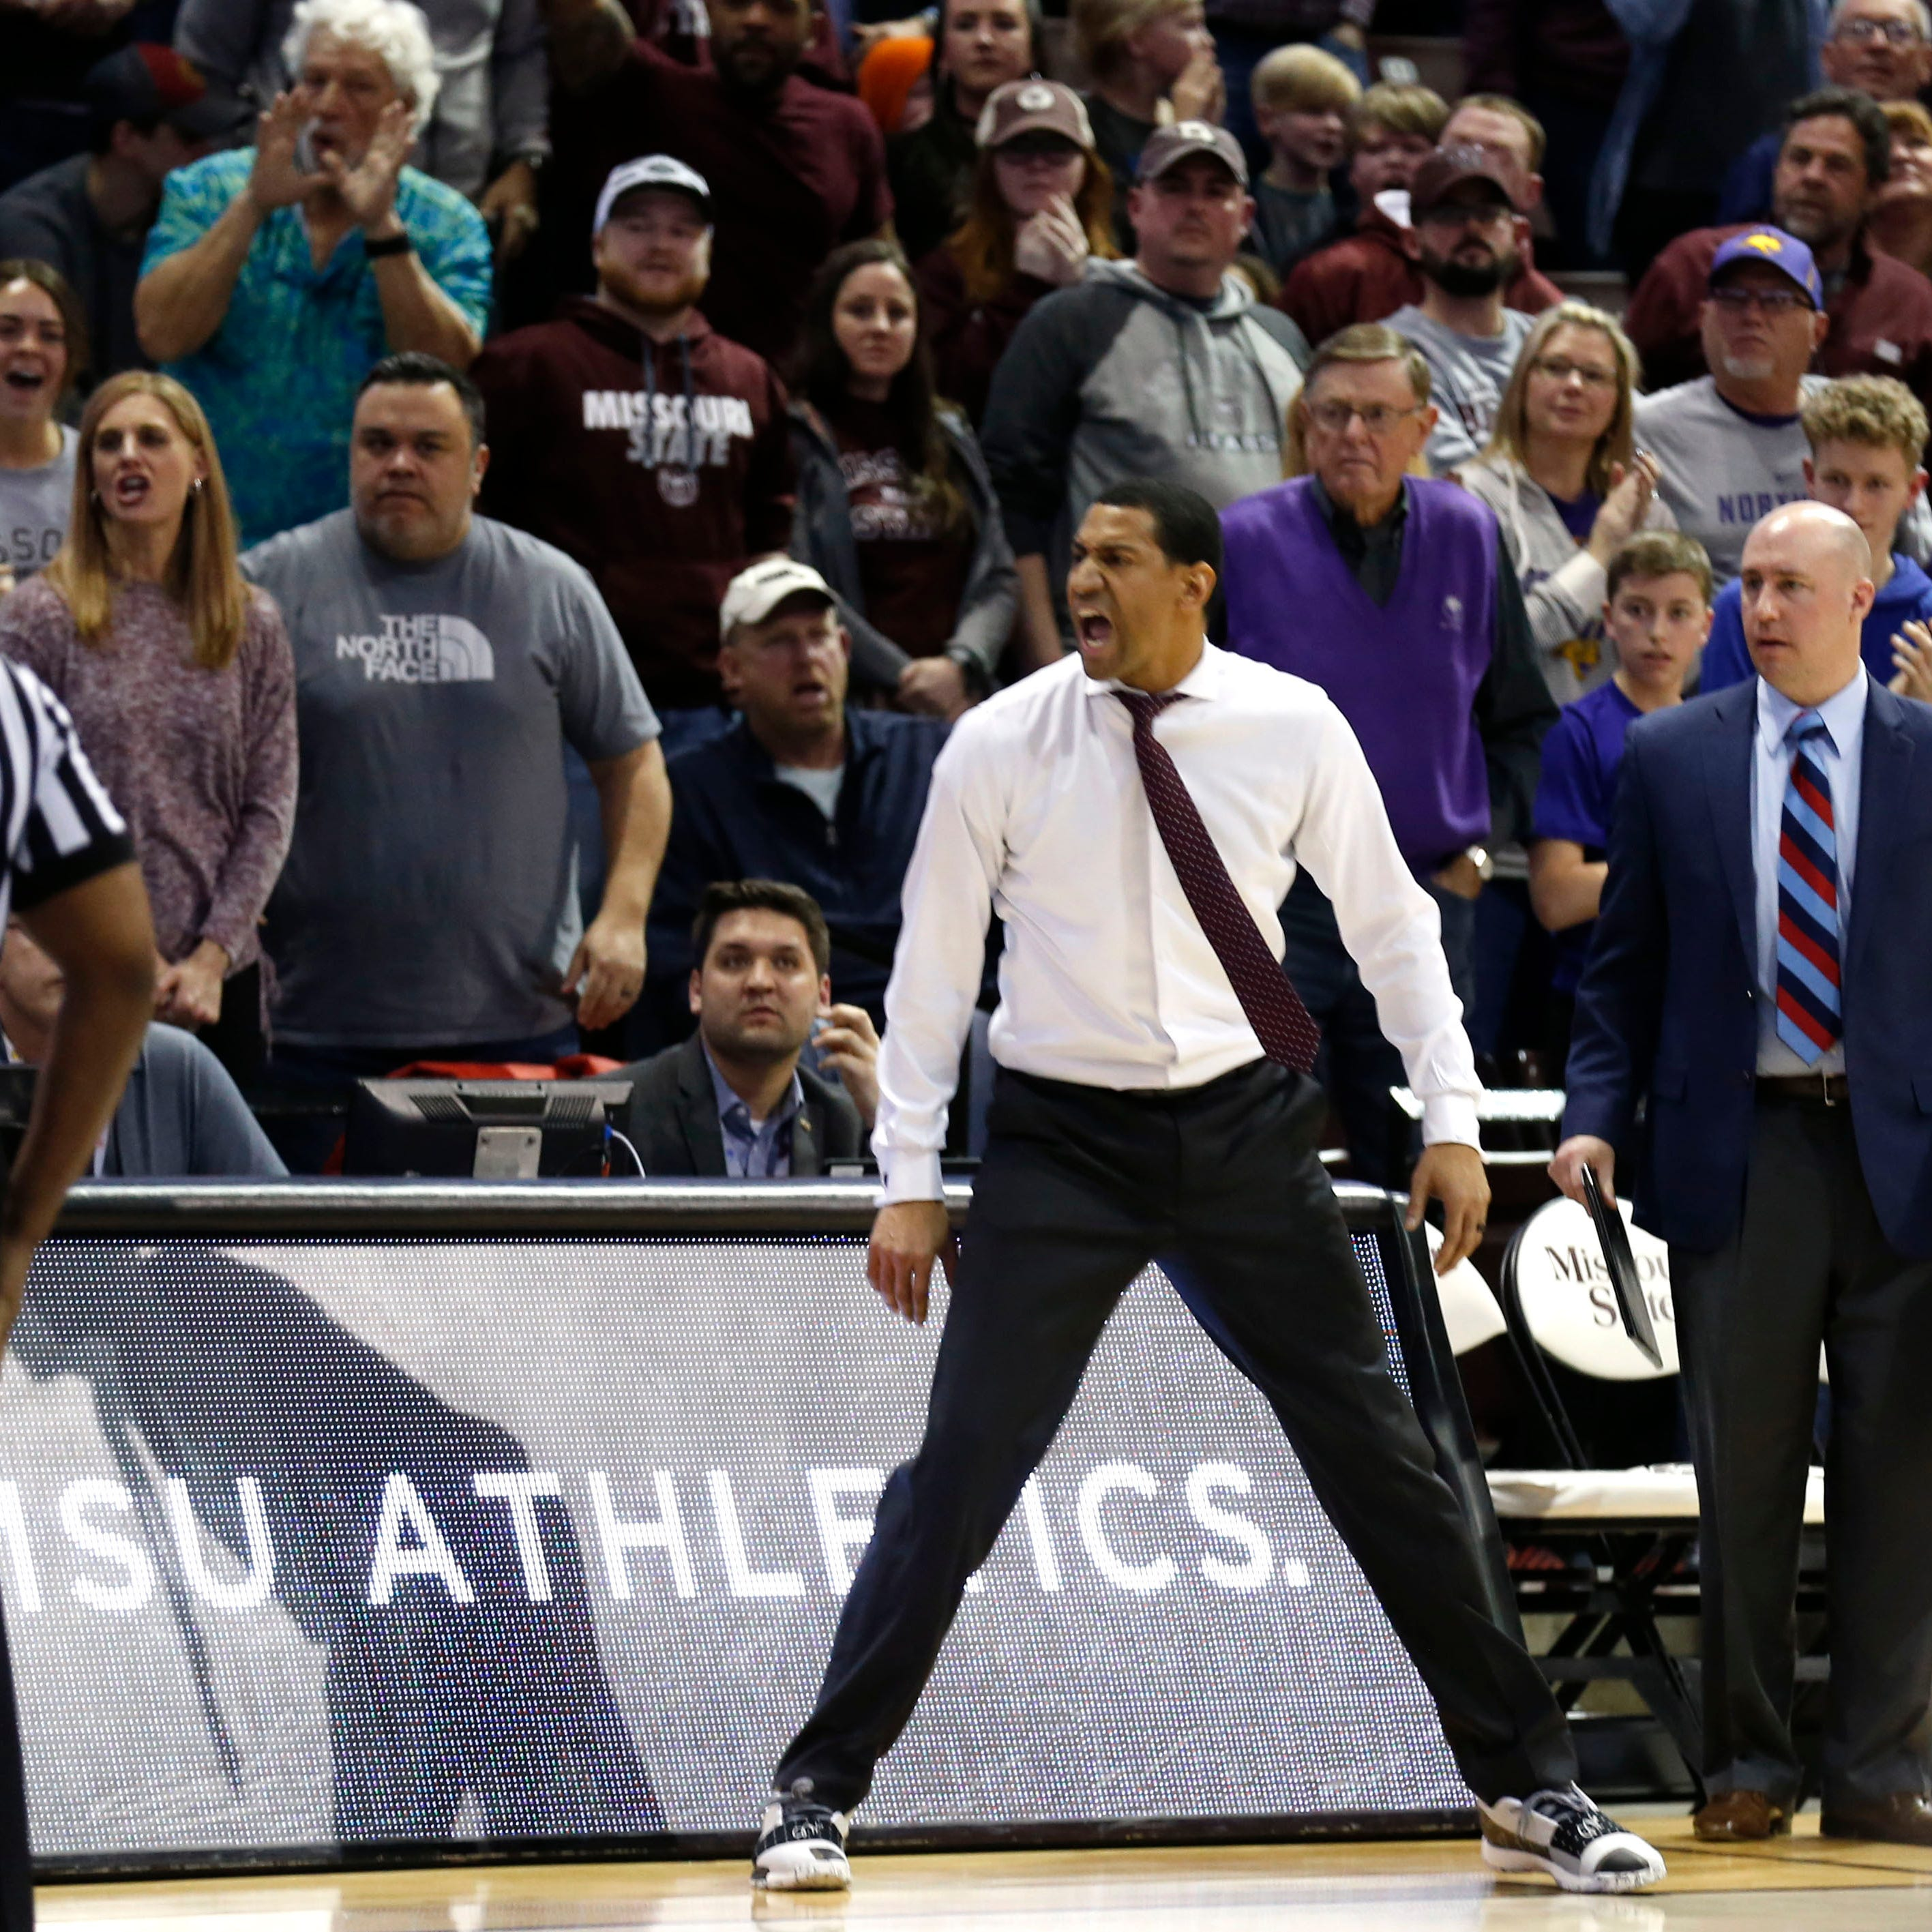 Missouri State head coach Dana Ford will not be suspended after being ejected during Wednesday's loss